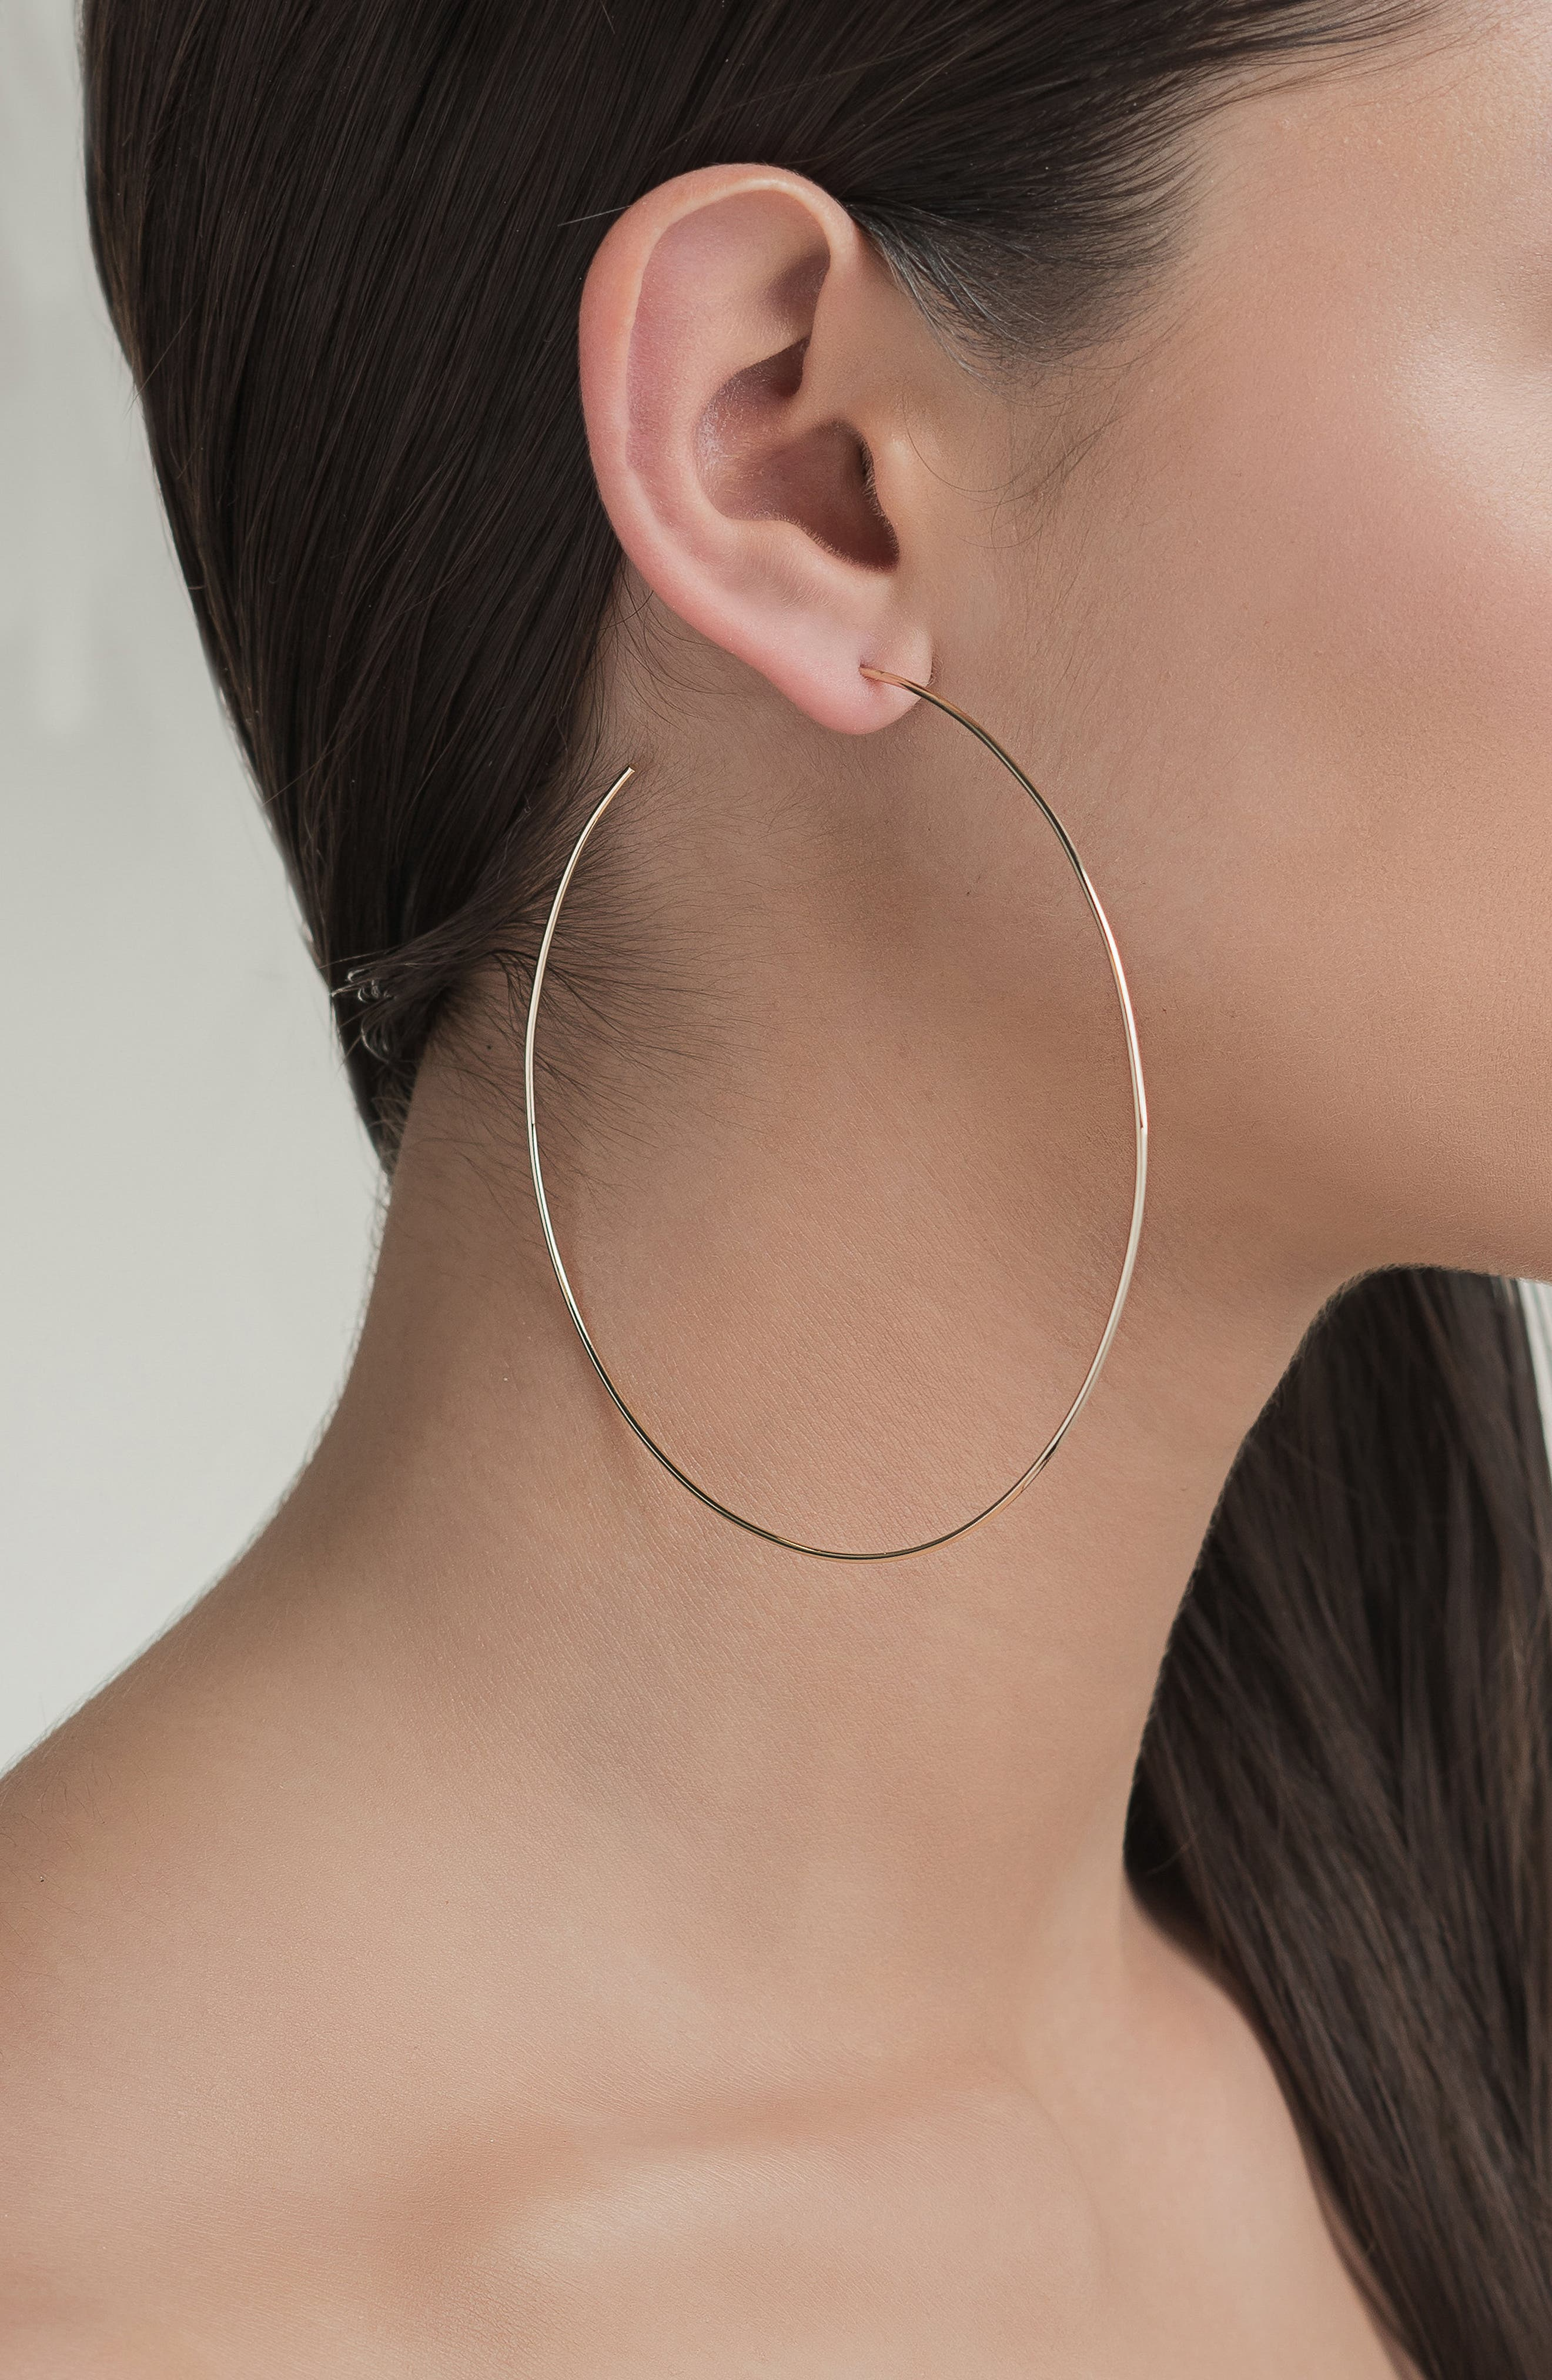 Open Wire Hoop Earrings,                             Alternate thumbnail 3, color,                             YELLOW GOLD